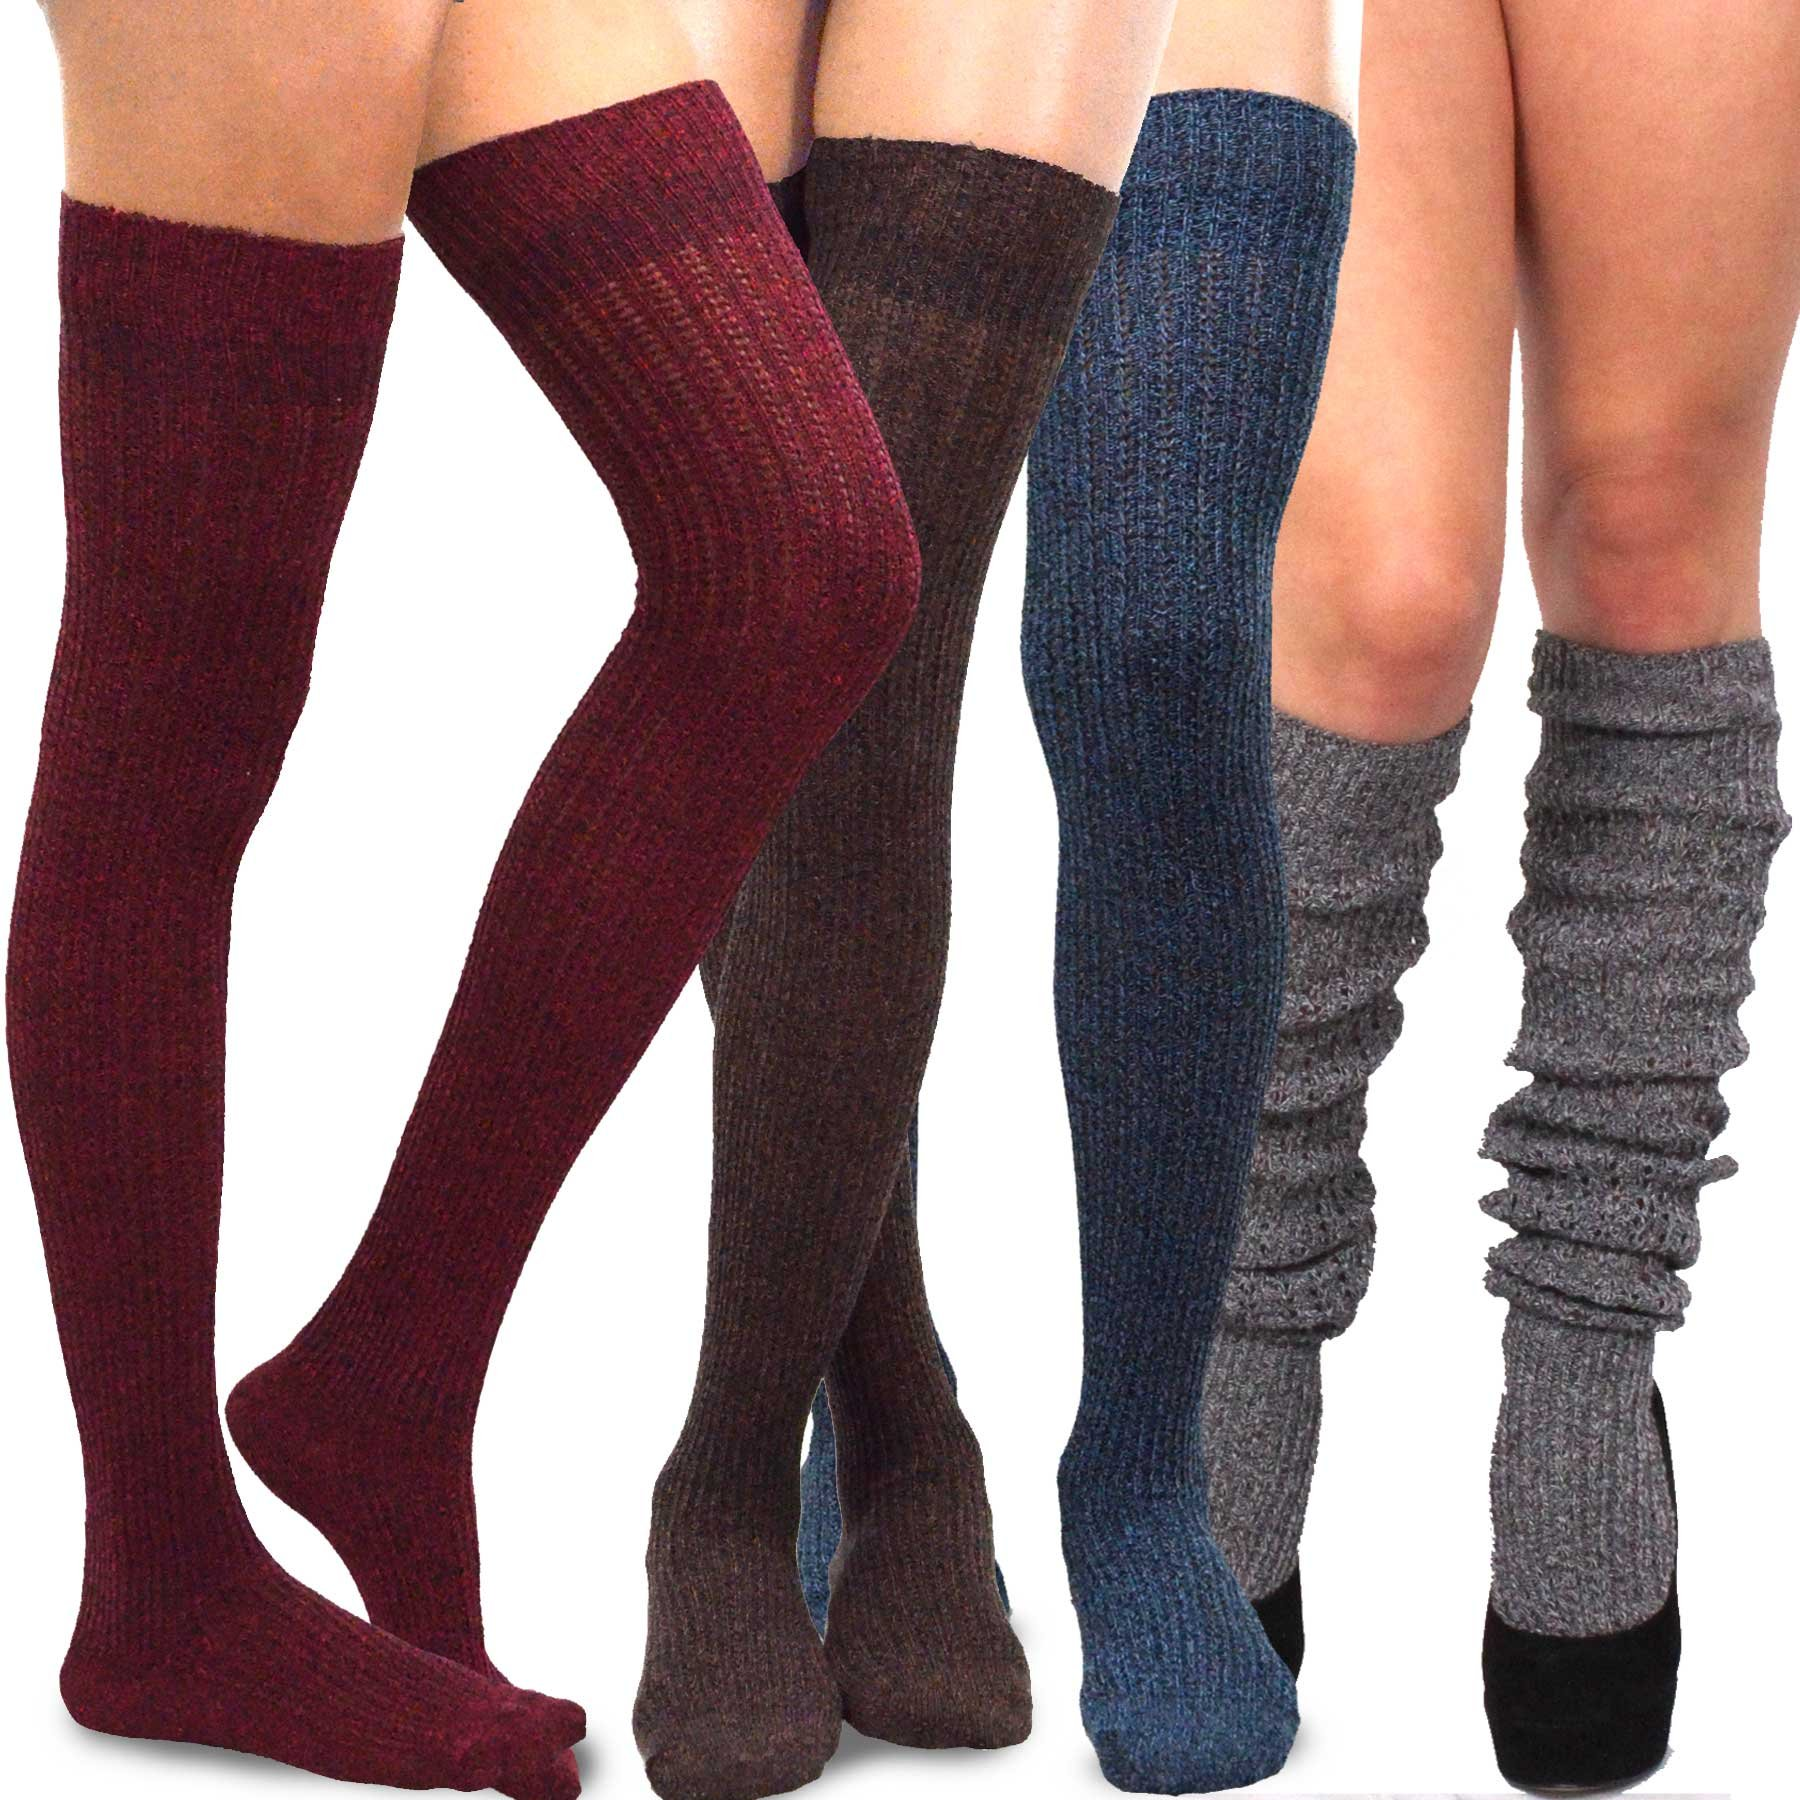 Teehee Women's Fashion Extra Long Cotton Thigh High Socks - 4 Pair Pack (Marled)